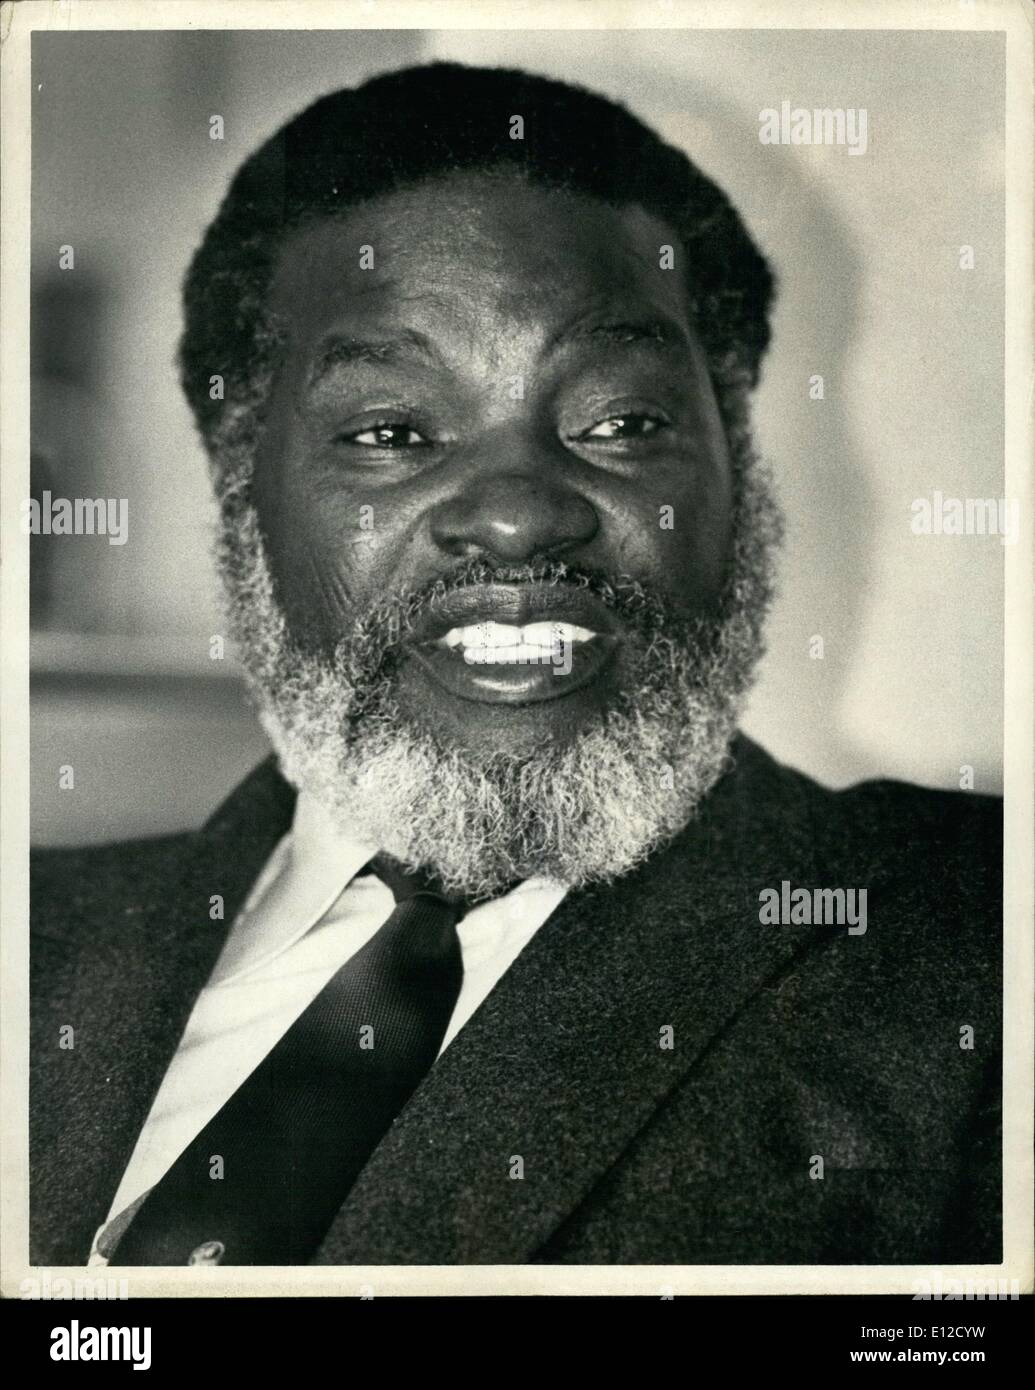 Dec. 14, 2011 - Guerrilla Leader Sam Nujoma, president of the South West Africa people's organization, said his men would continue to fight inside Namibia (South West Africa) while observing a recently condluded disengagement accord between Angola and South Africa. Mr. Nujoma, on the tail end of a trip that has taken him to six countries made his remarks during an interview at the United Nations Hotel in New York City. 'The fight in Namibia will continue, because there is no cease-fire in Namibia'' Mr. Nujoma said though he added that swapo was ready to sign a cease-fire with South Africa - Stock Image